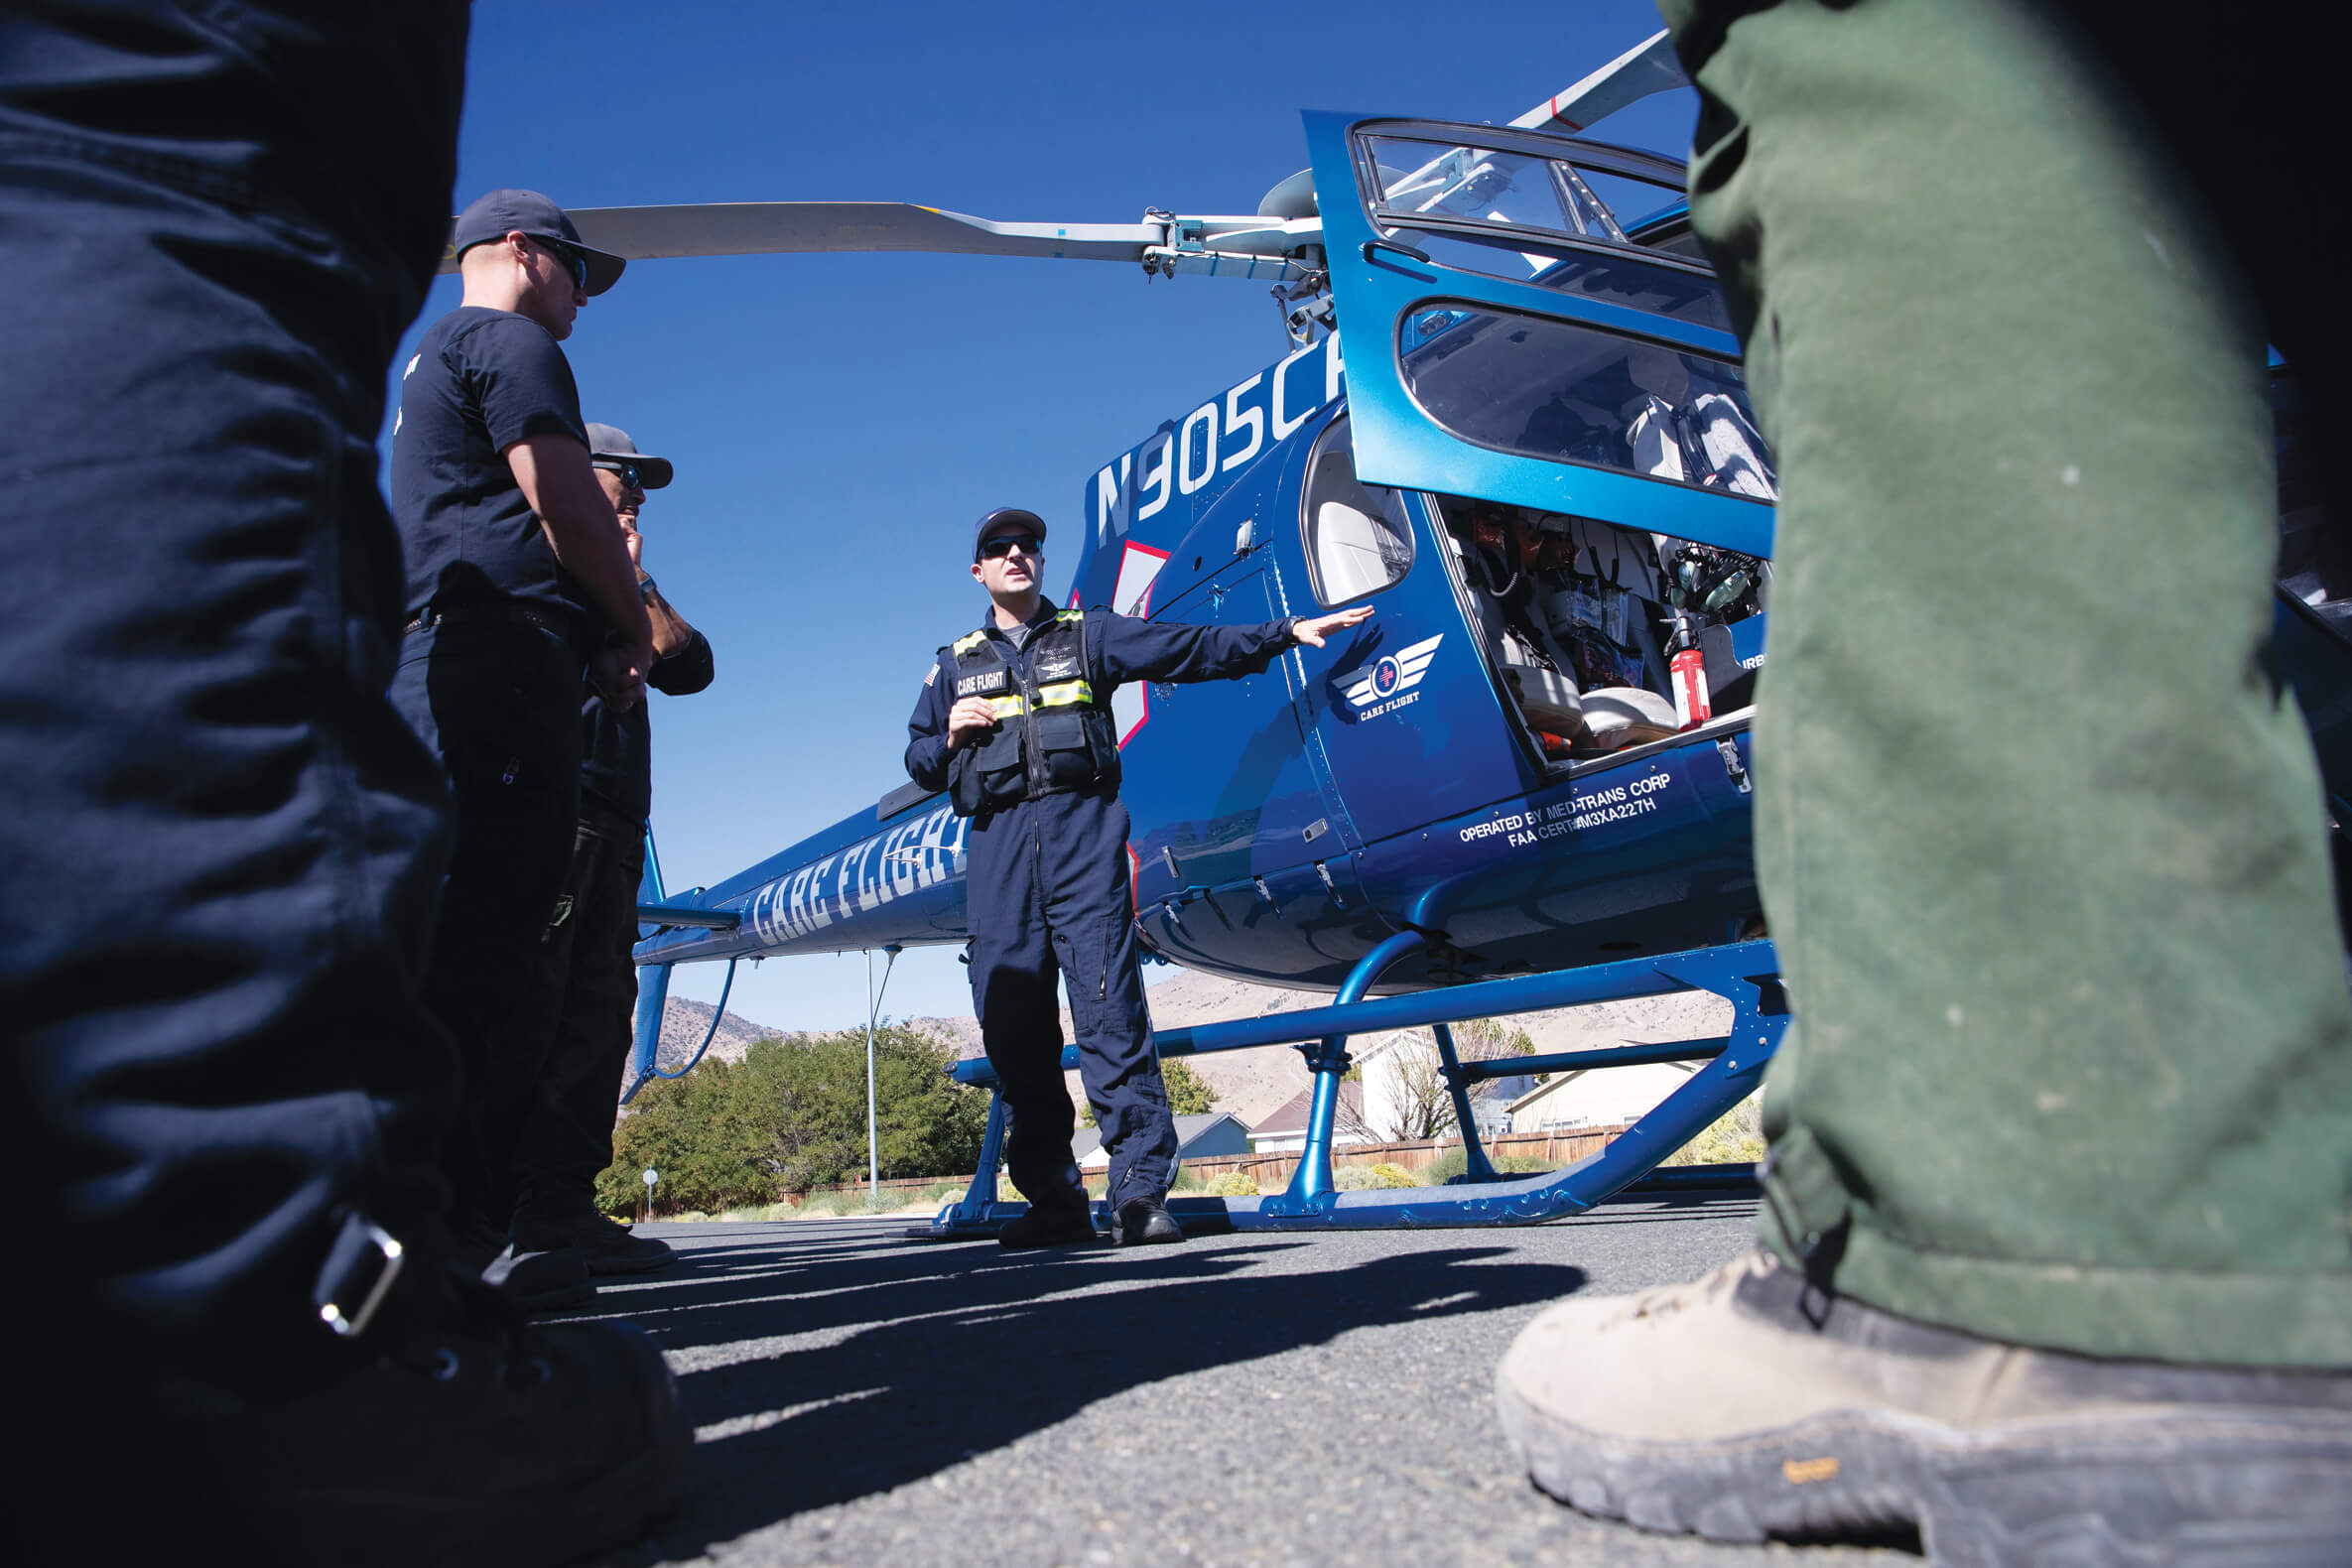 Air ambulance costs in rural areas becoming a matter of life